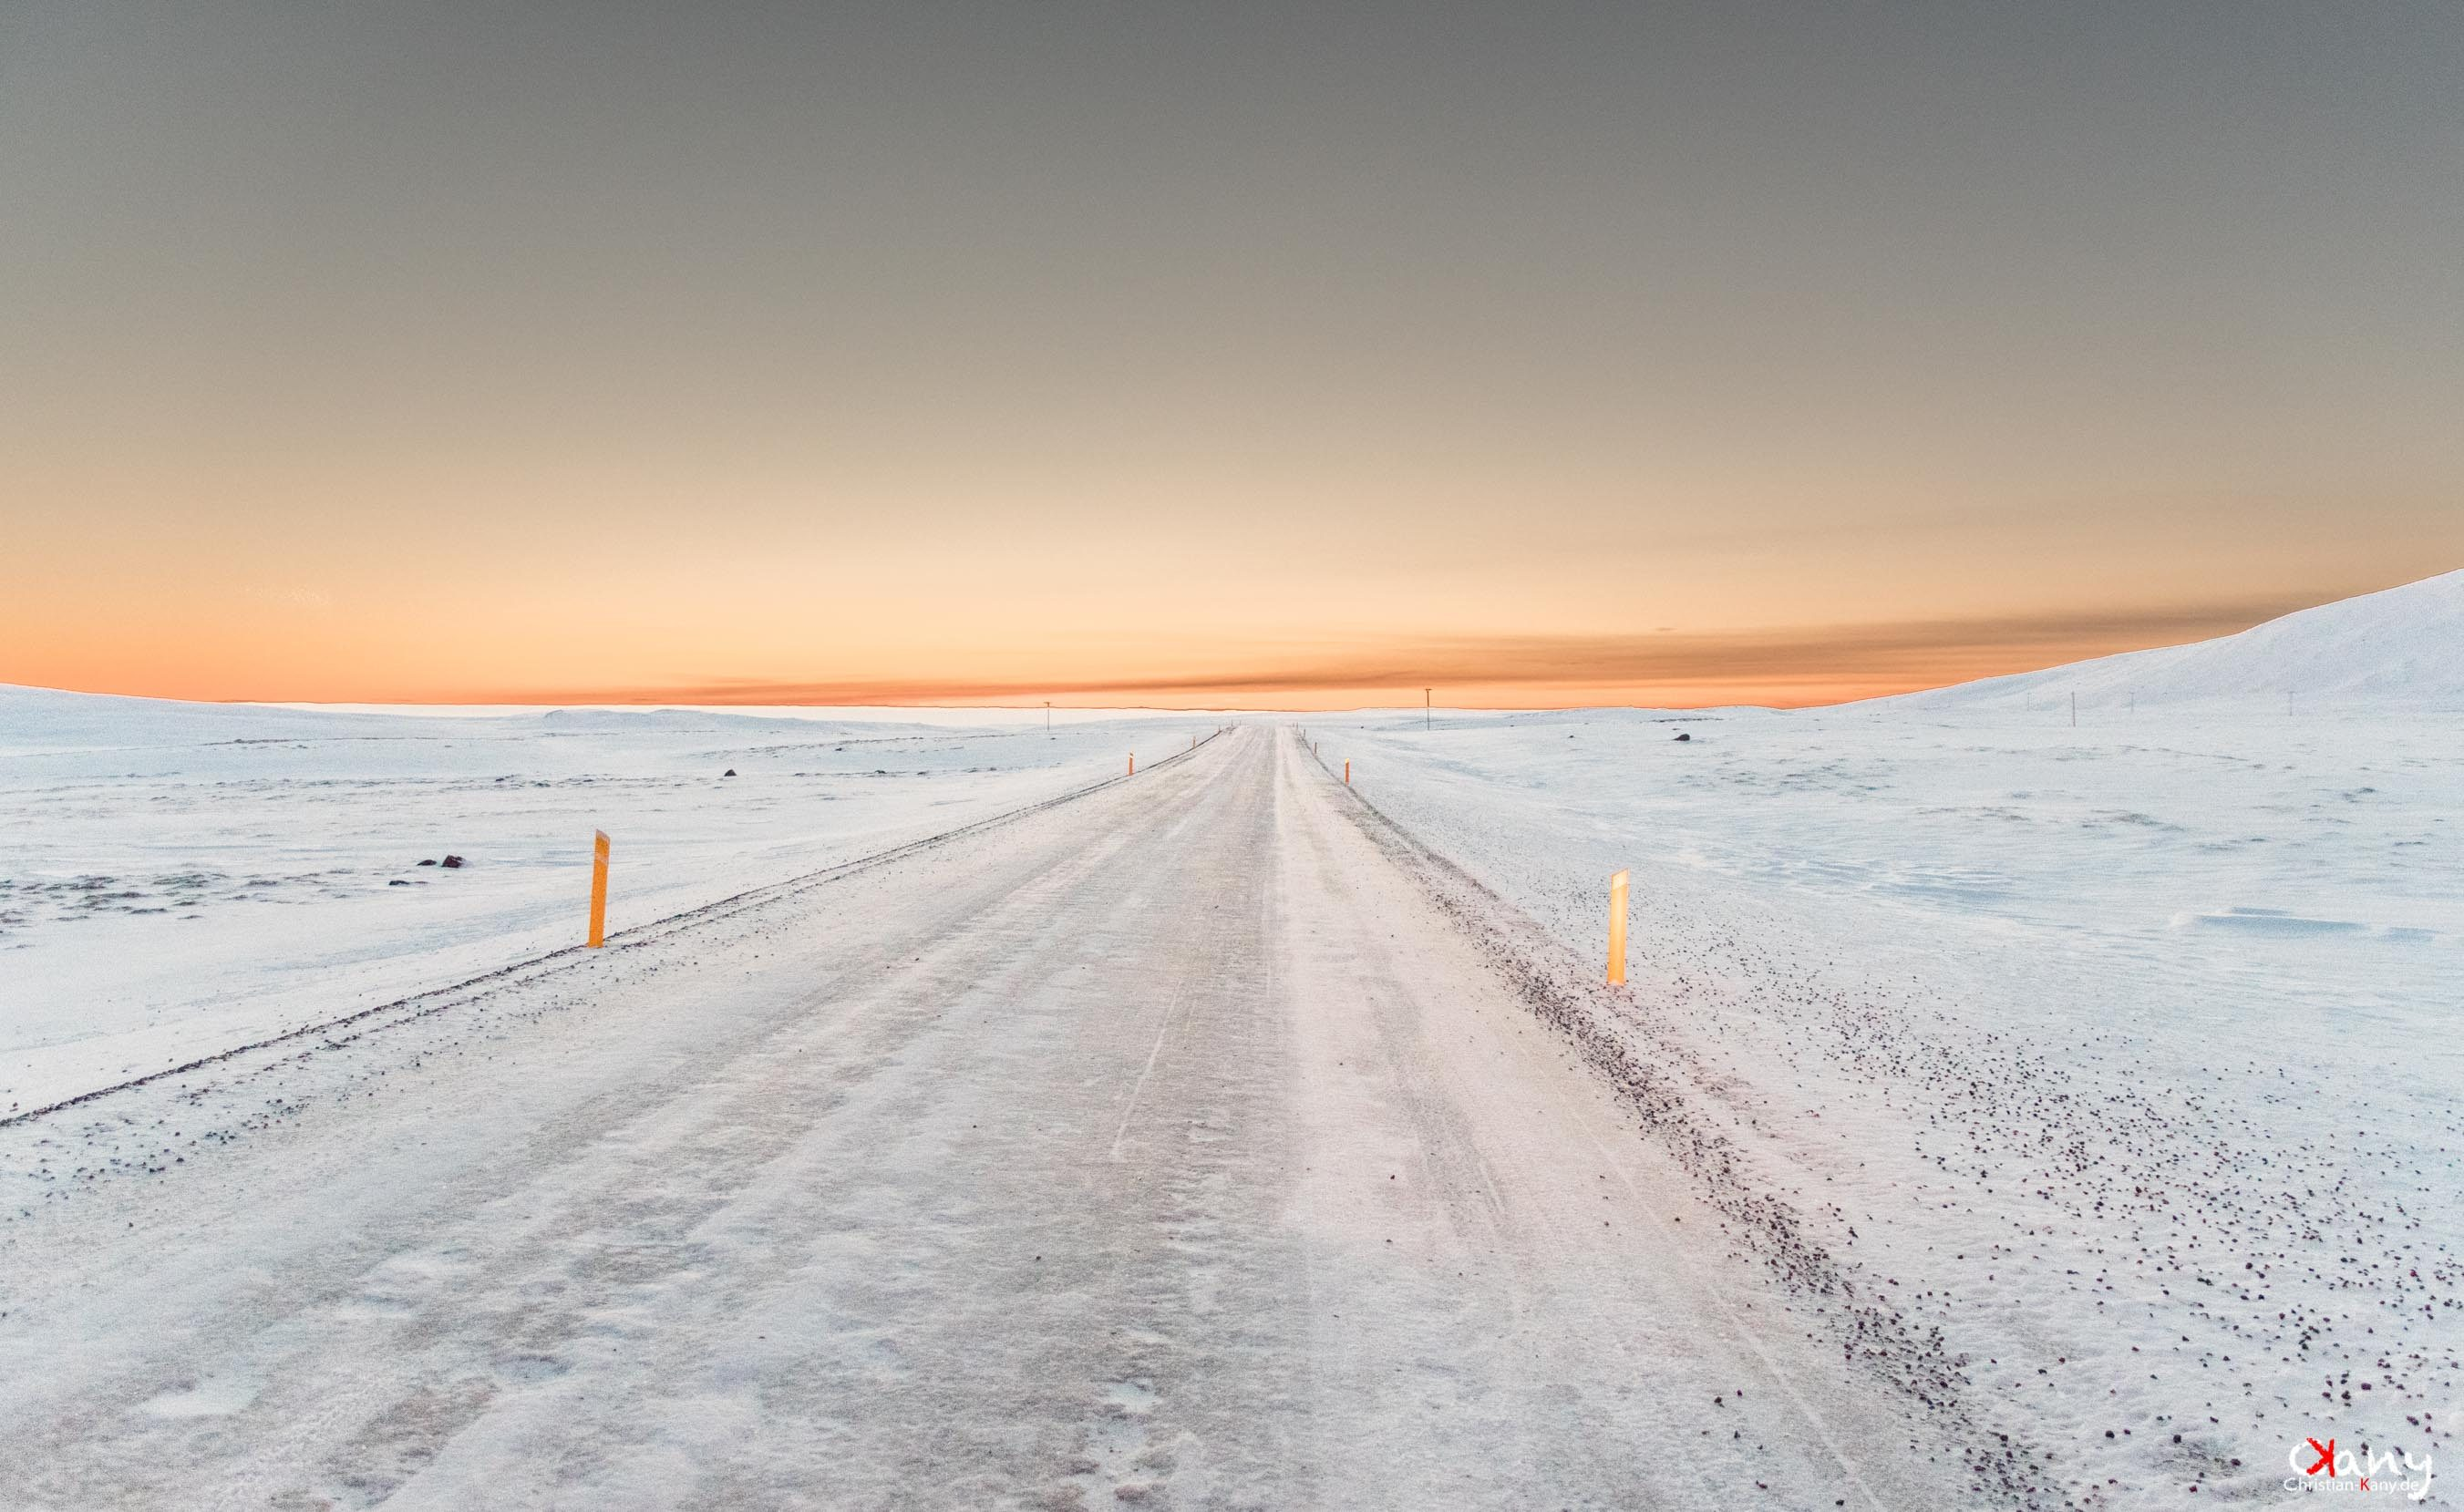 Iceroad in Iceland